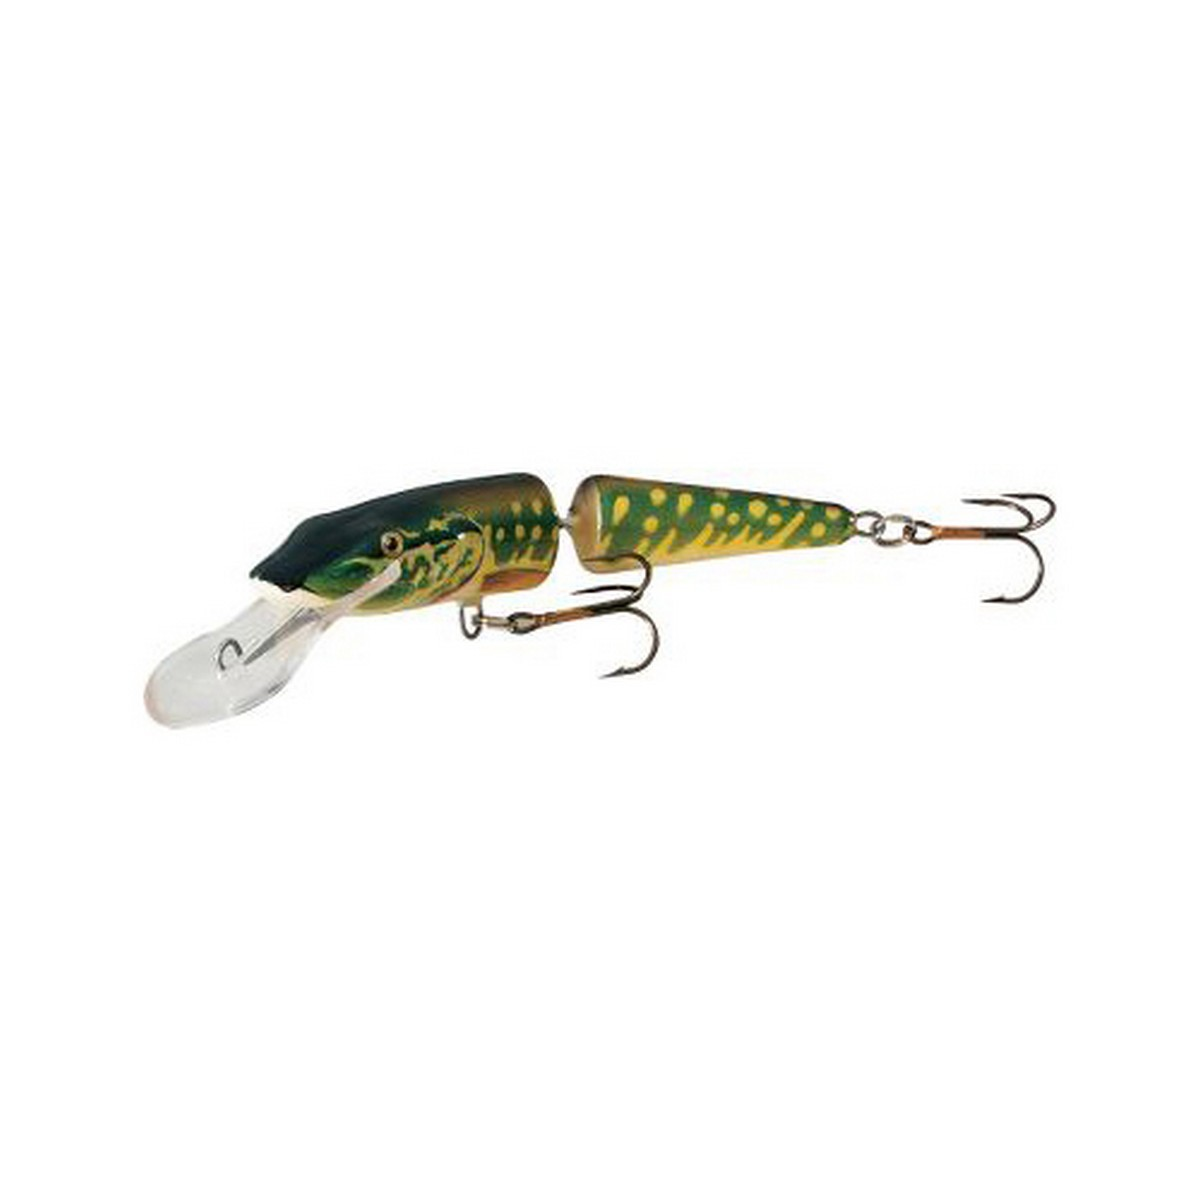 Воблер Salmo Pike Jointed Floating - чупещ, 11cm